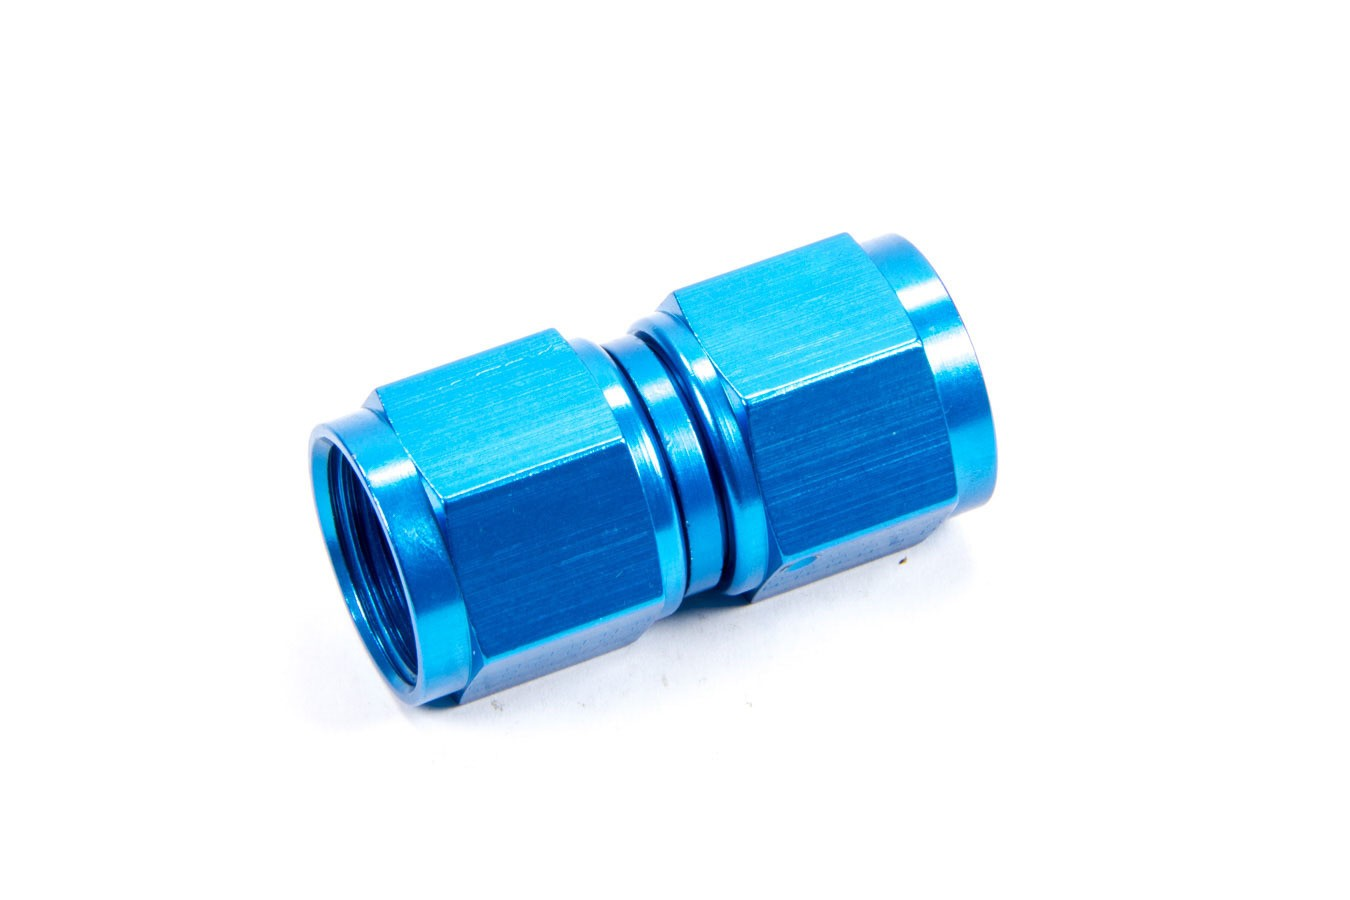 Fragola 496110 Fitting, Adapter, Straight, 10 AN Female Swivel to 10 AN Female Swivel, Aluminum, Blue Anodize, Each